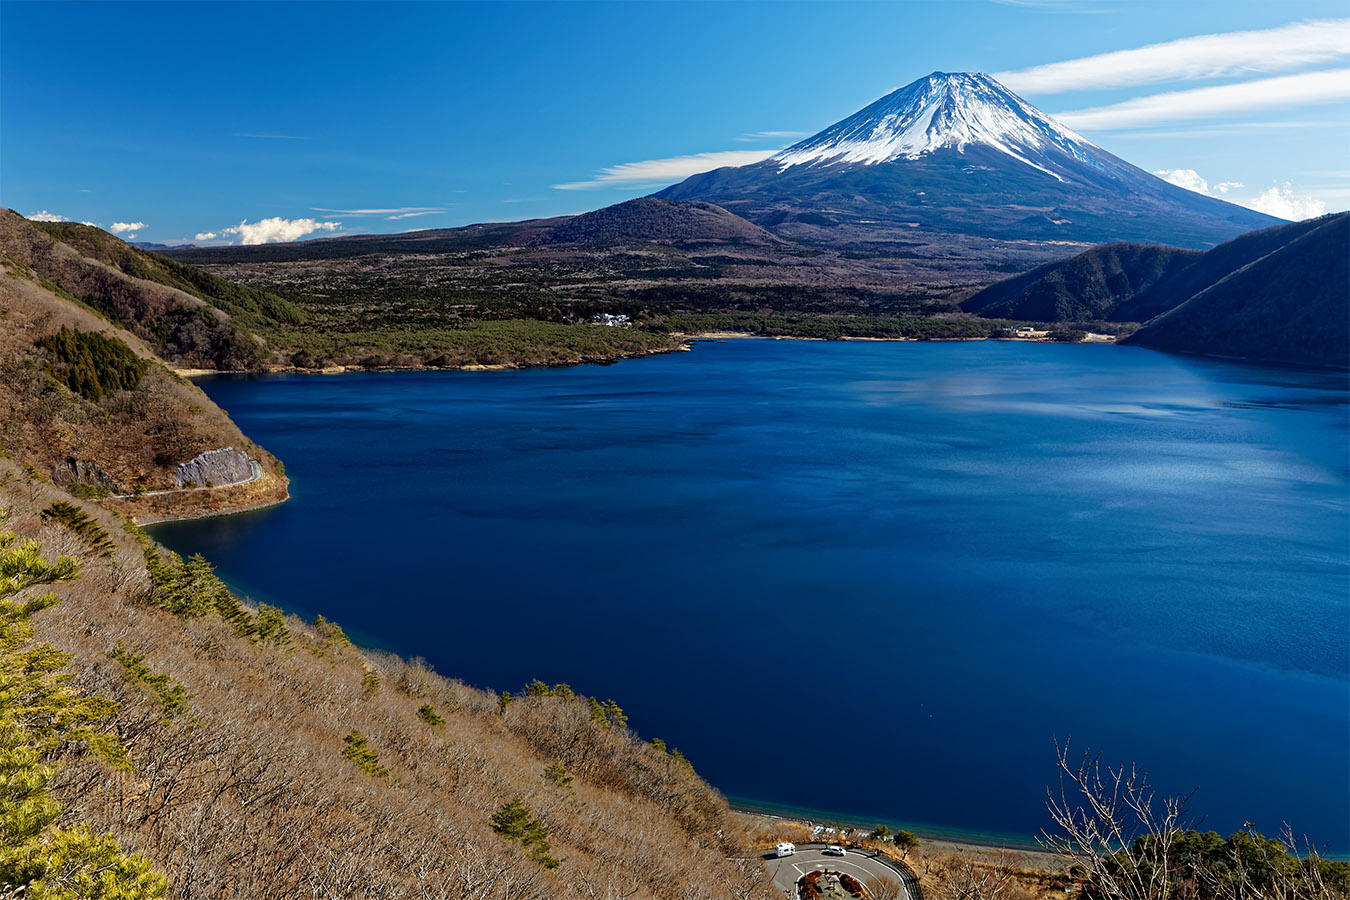 Discover Aokigahara and Fuji area Private Package Tour